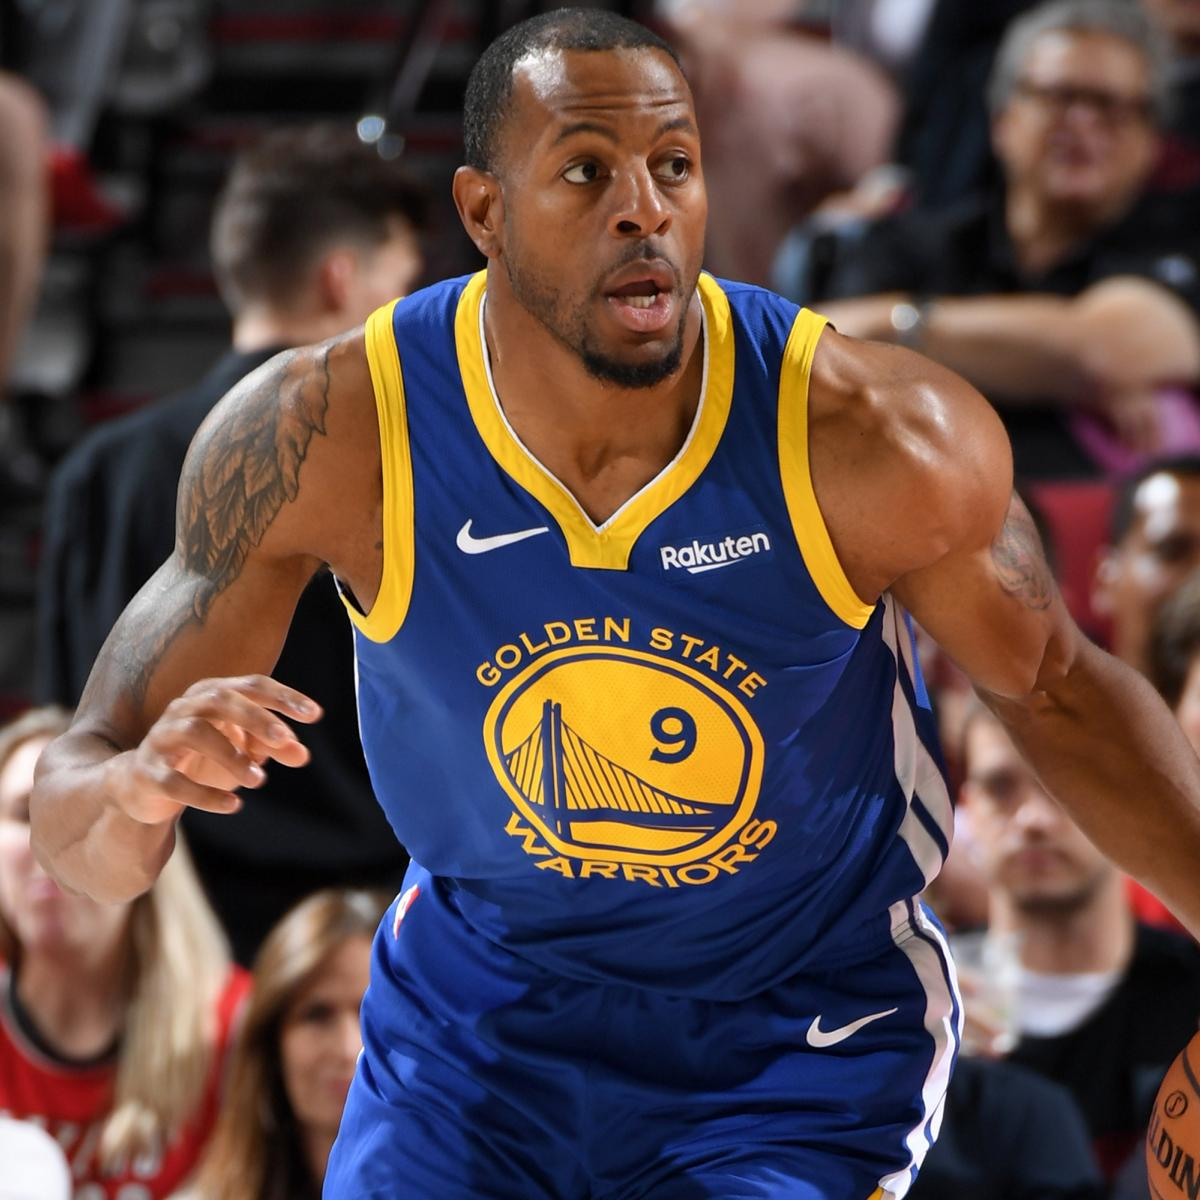 Blazers Injury Report: Andre Iguodala Ruled Out For Warriors Vs. Blazers Game 4